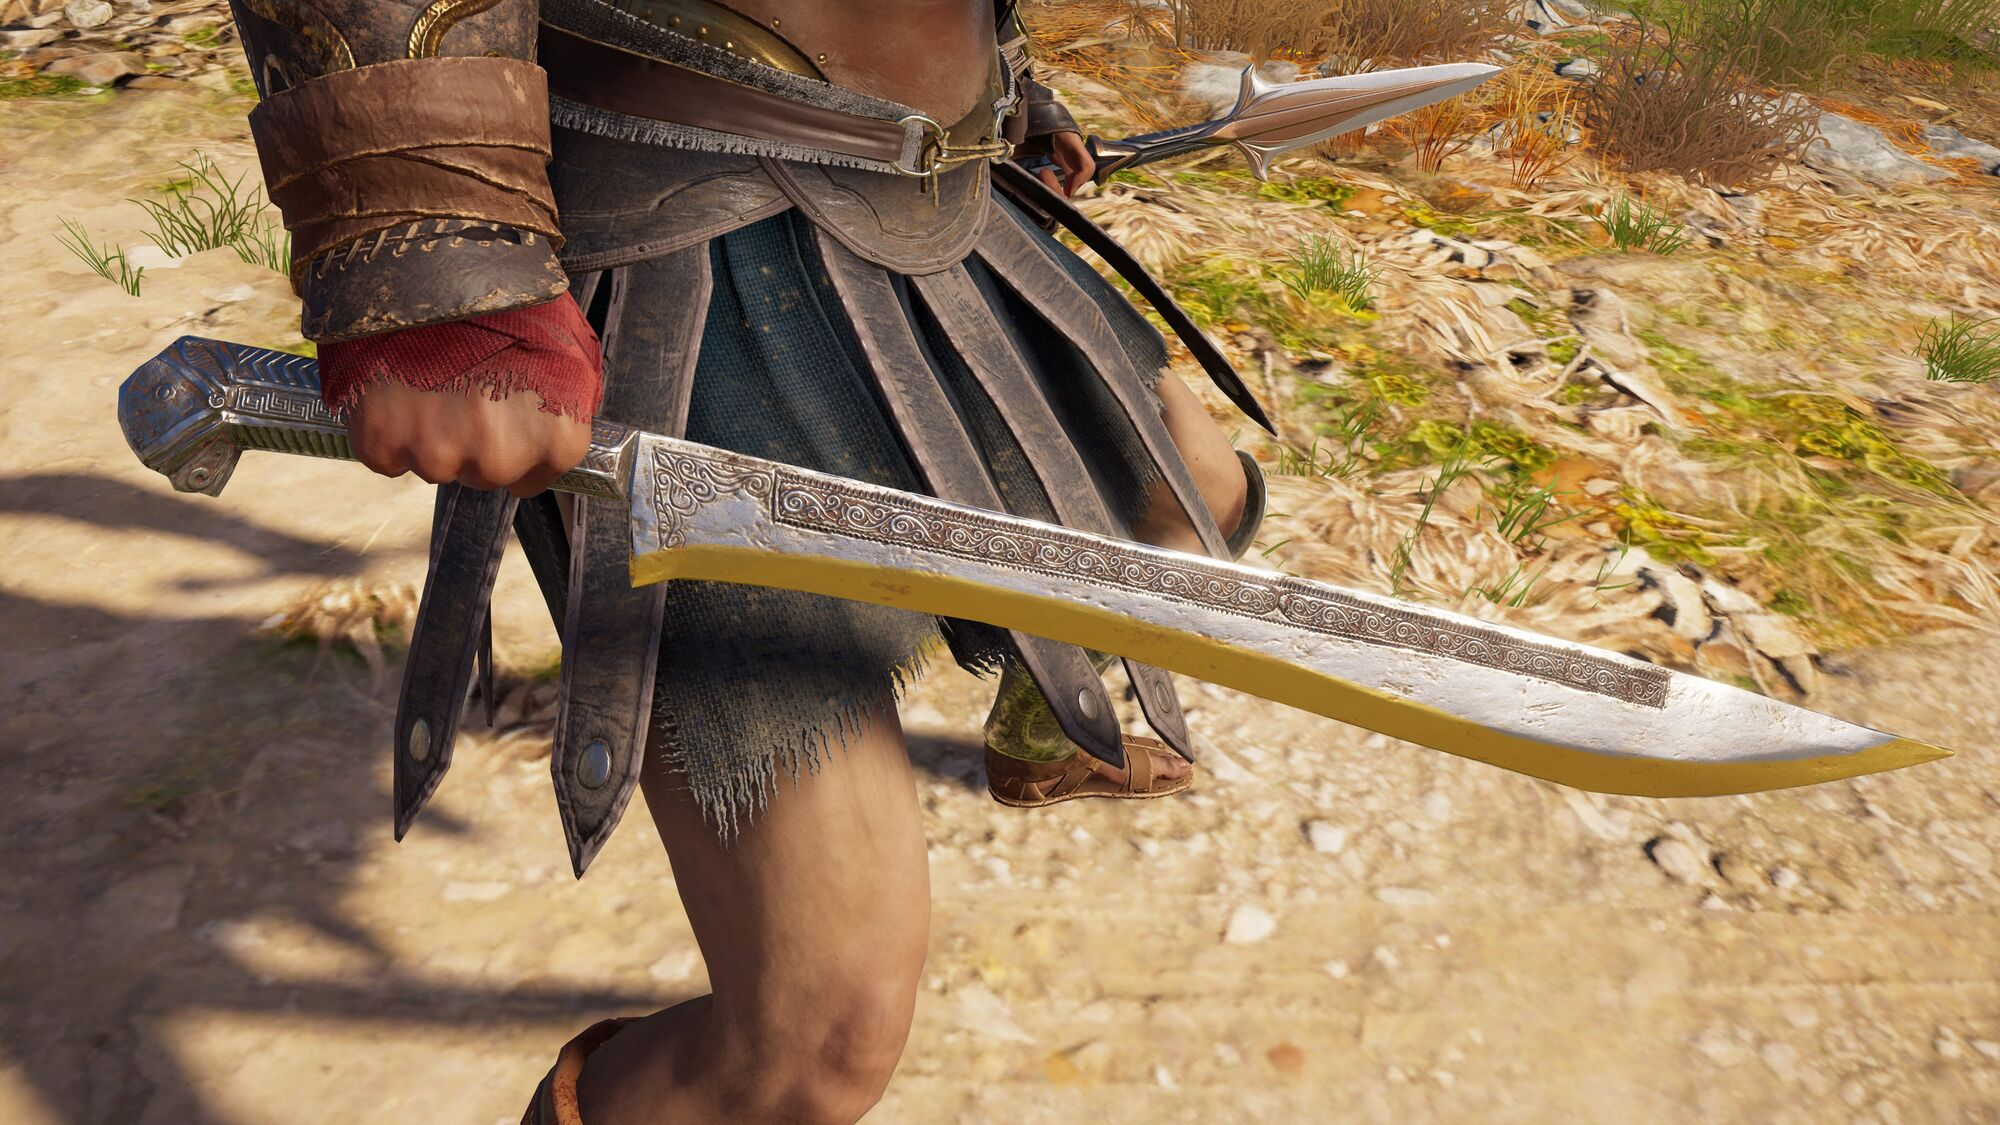 Will Excalibur Be In The Upcoming Assassins Creed Valhalla?